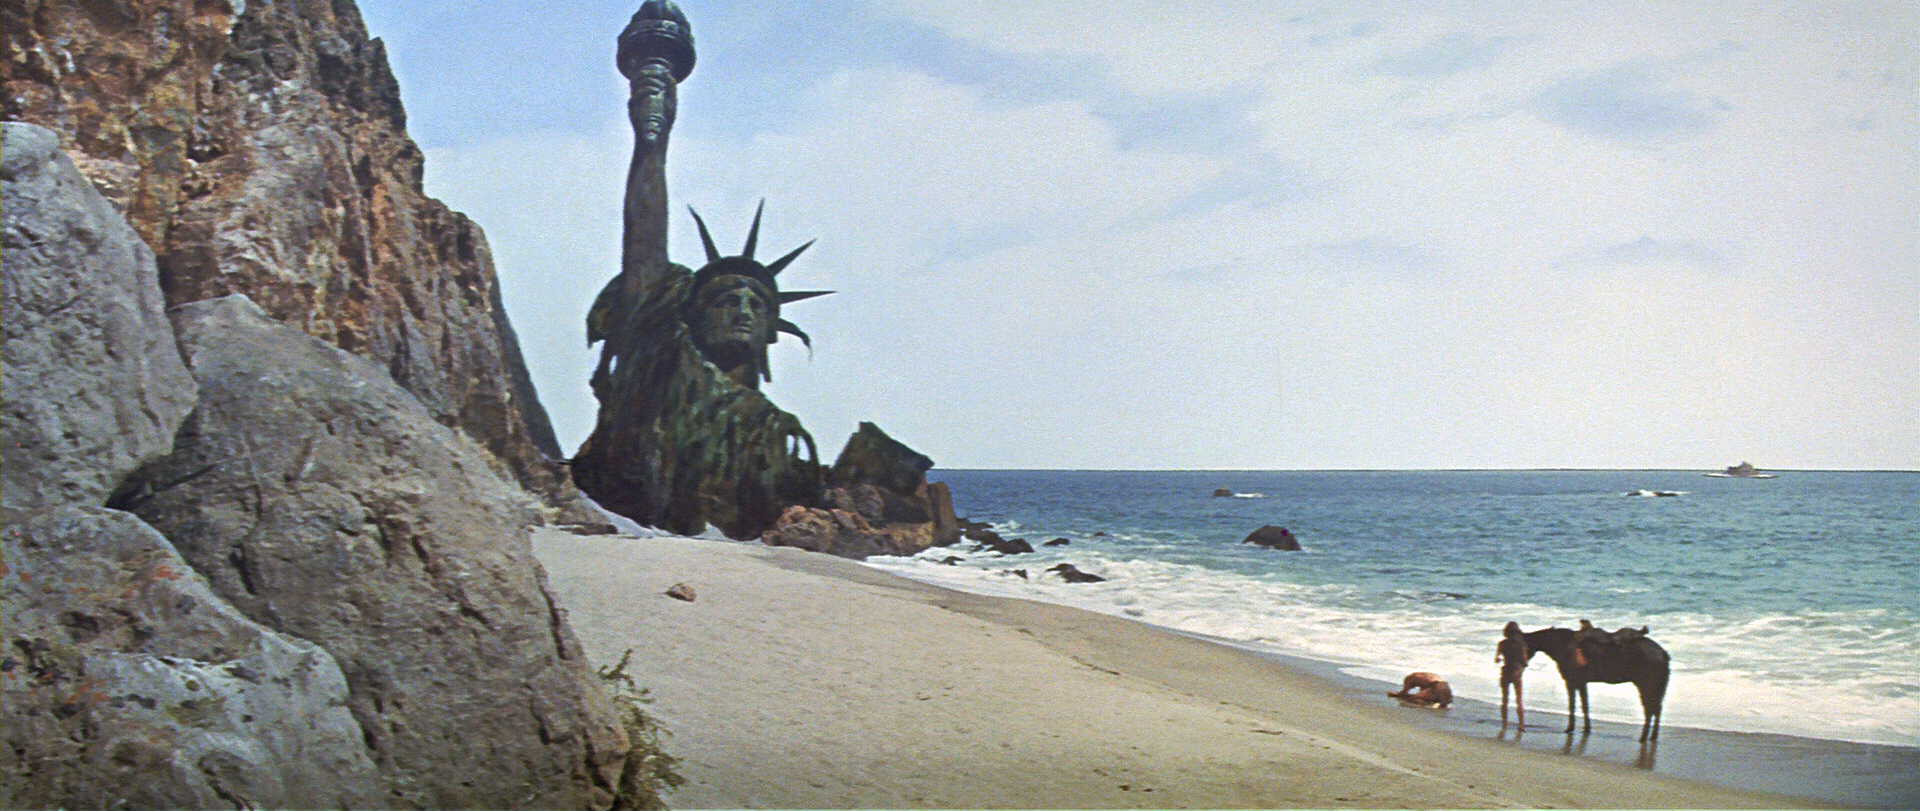 Planet of the Apes: When Lady of Liberty decides to go swimming (Image credit: Twentieth Century Fox)